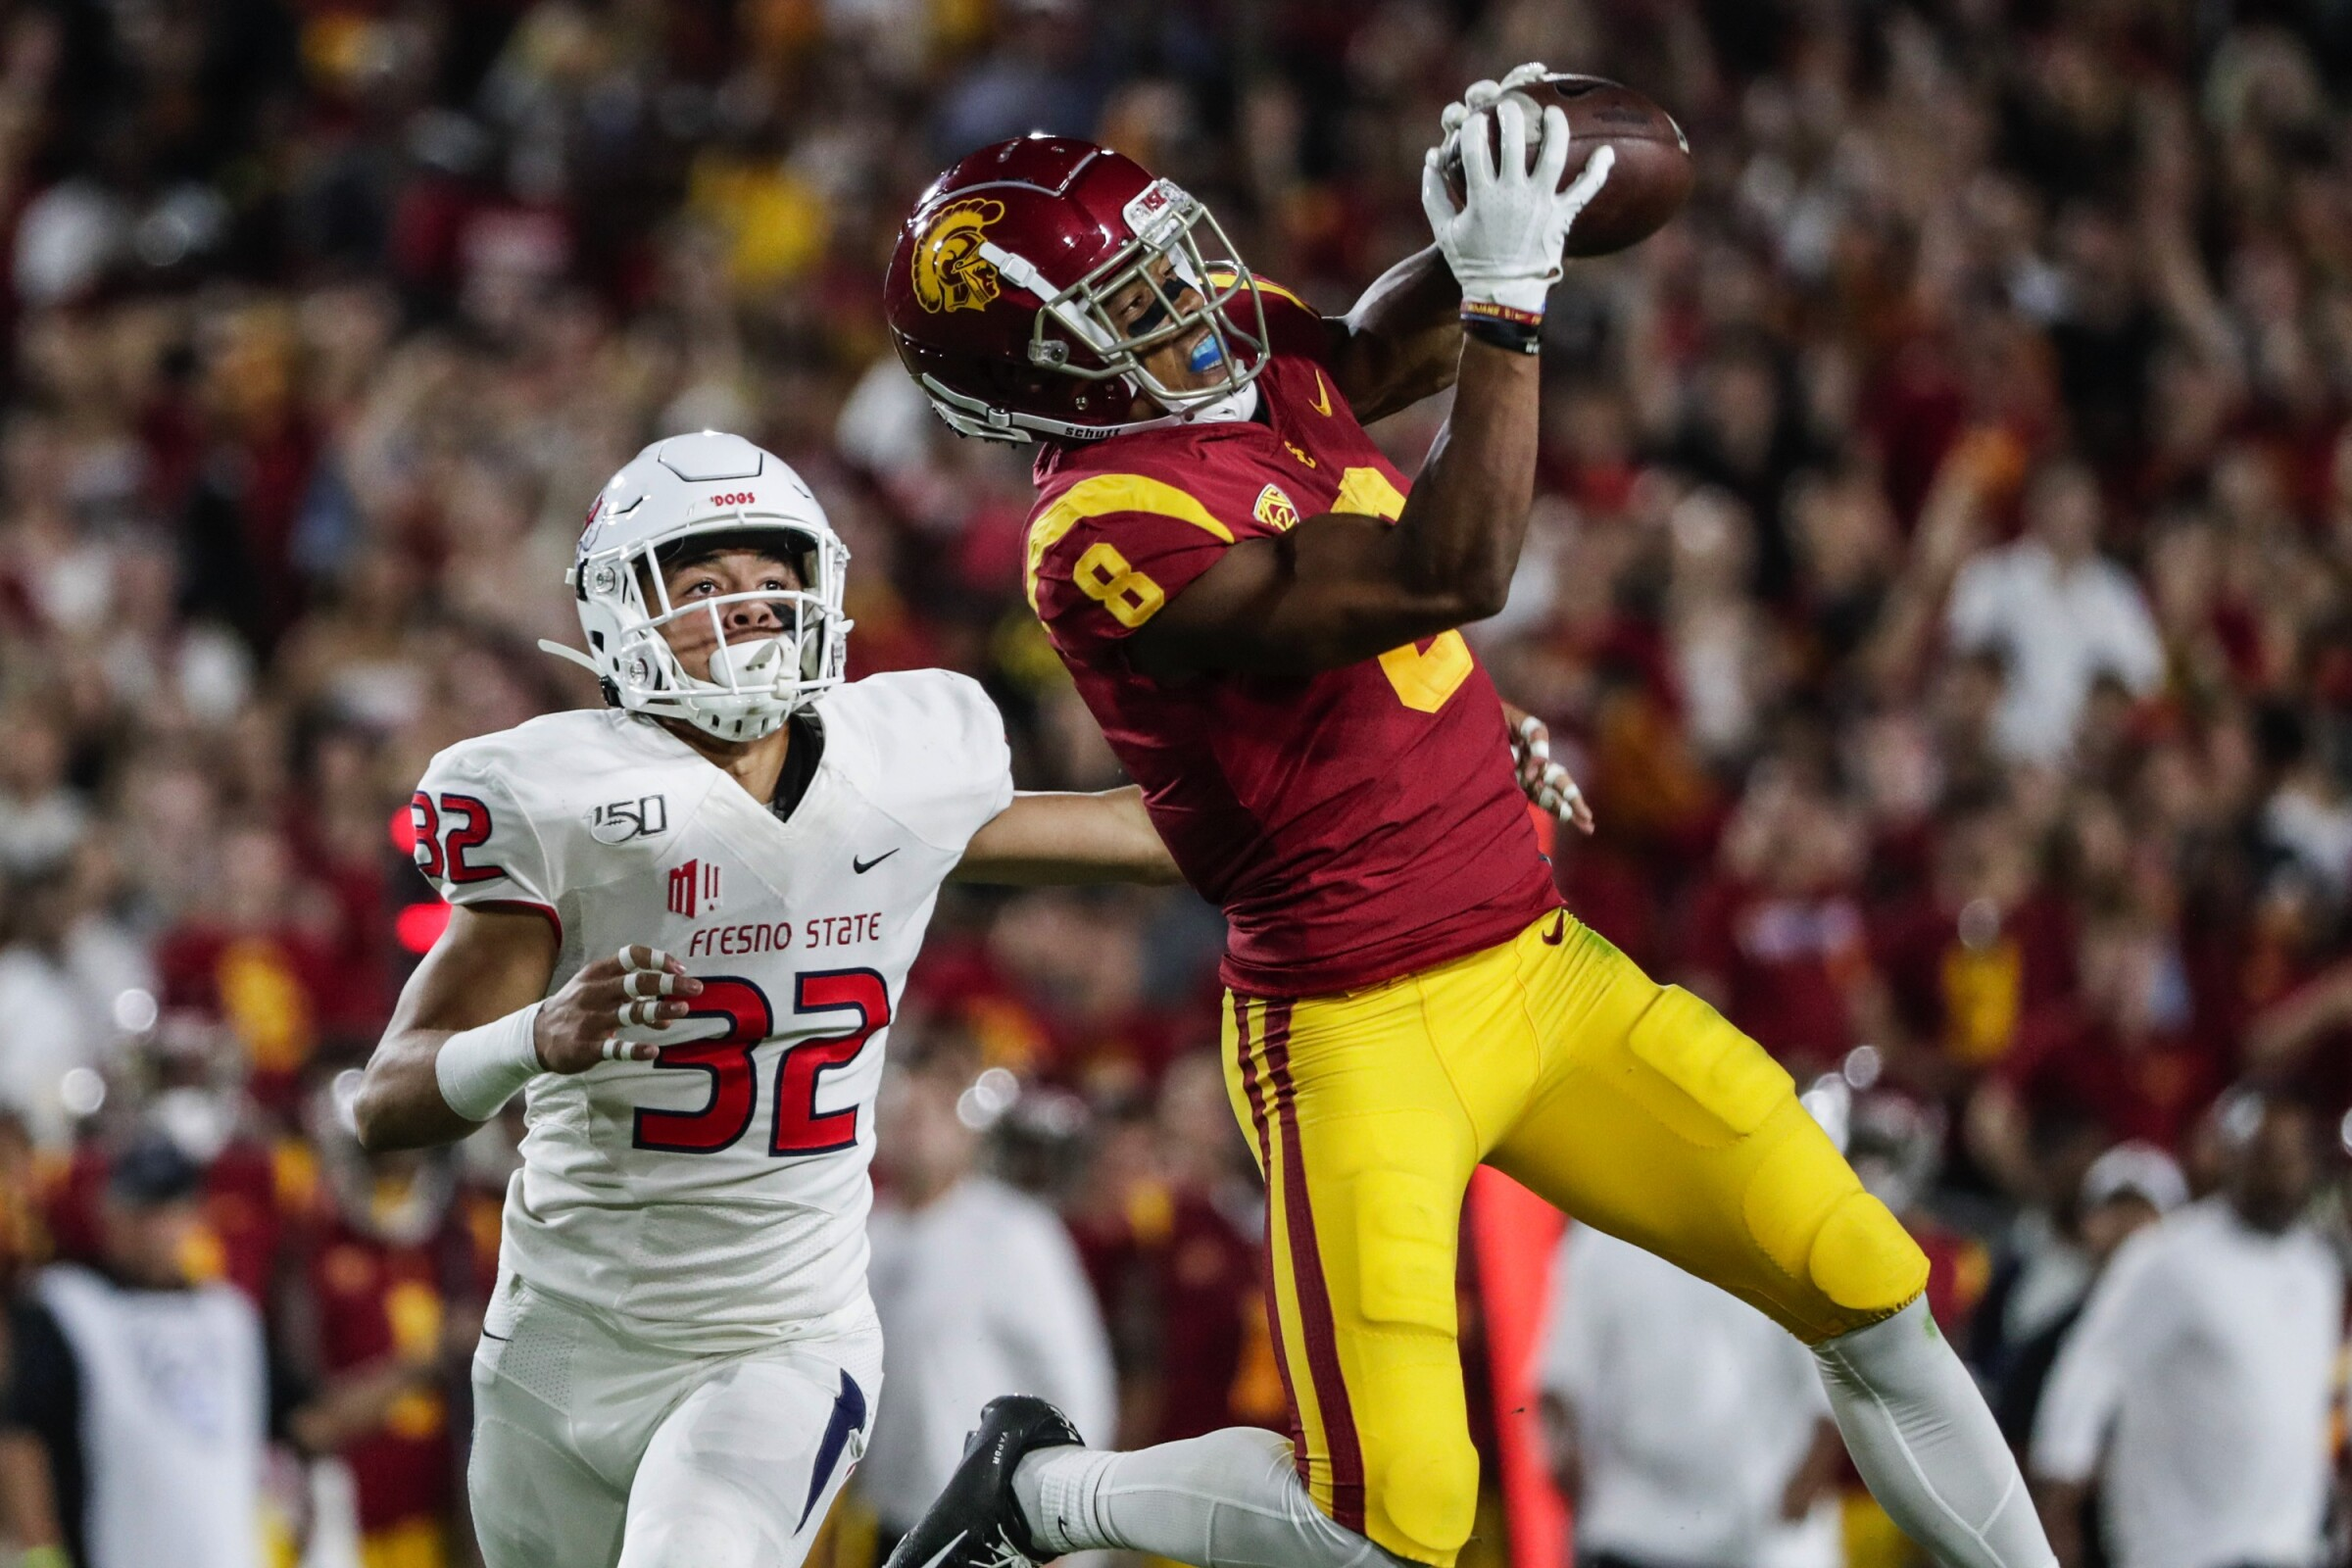 USC wide receiver Amon-ra St. Brown makes a catch against Fresno State in September 2019.